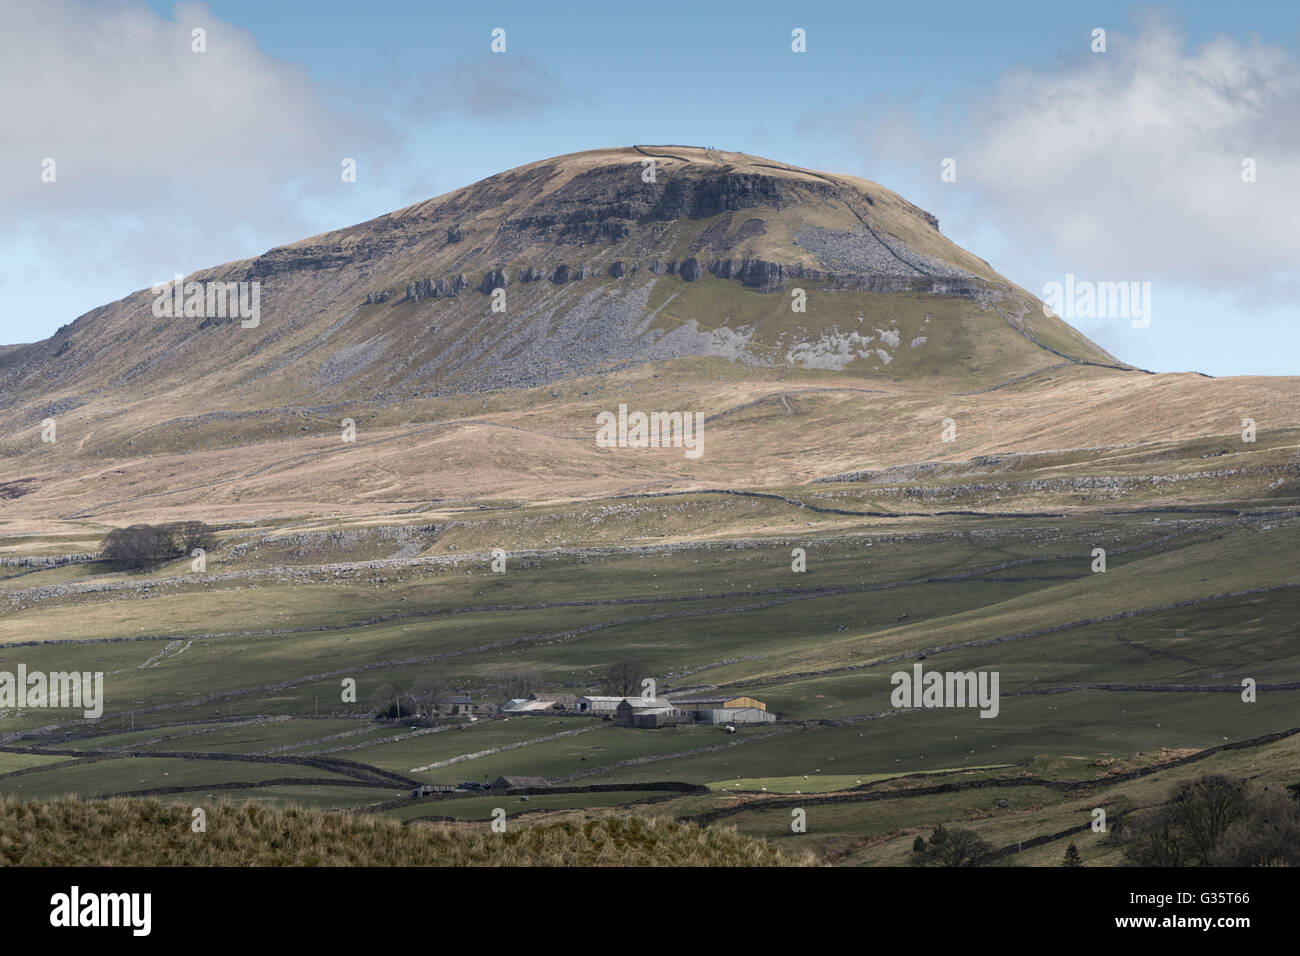 Pen-y-ghent, one of Yorkshire's Three Peaks, seen from the South-West - Stock Image